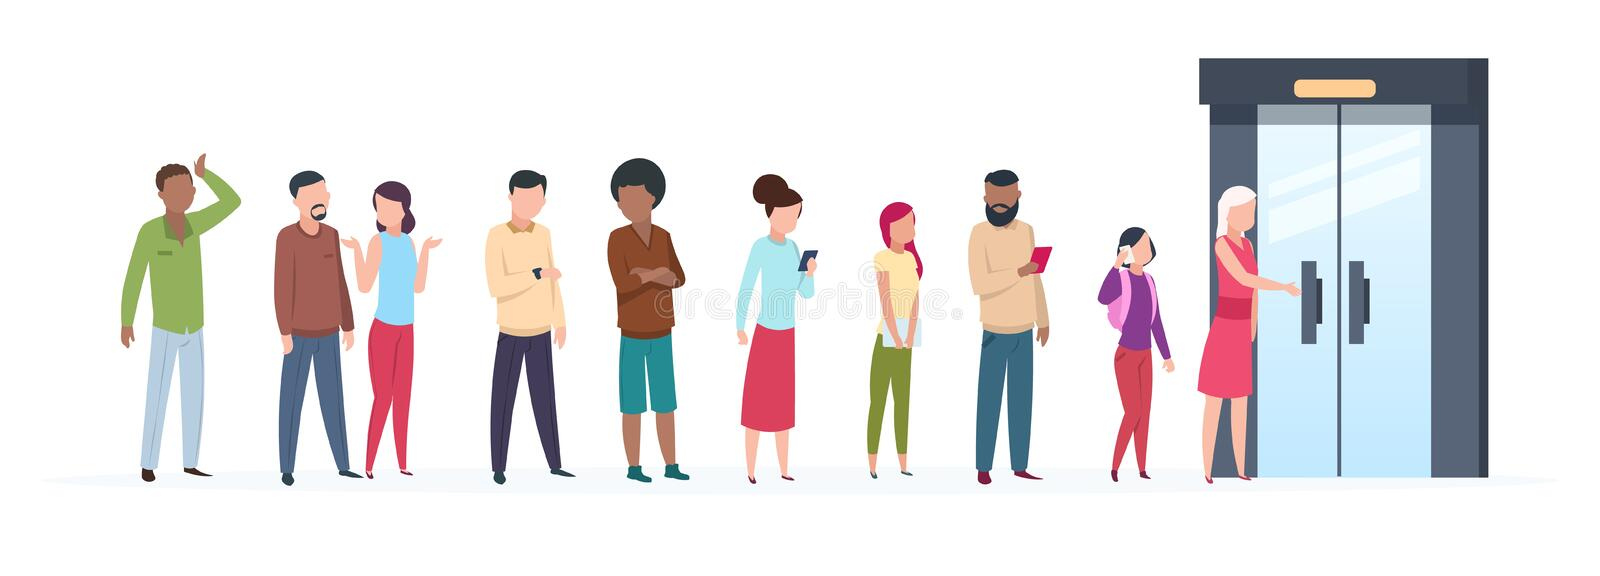 Open door queue. Trending people characters standing outside young adult customer line group stylish clothes. Flat. Vector illustration royalty free illustration